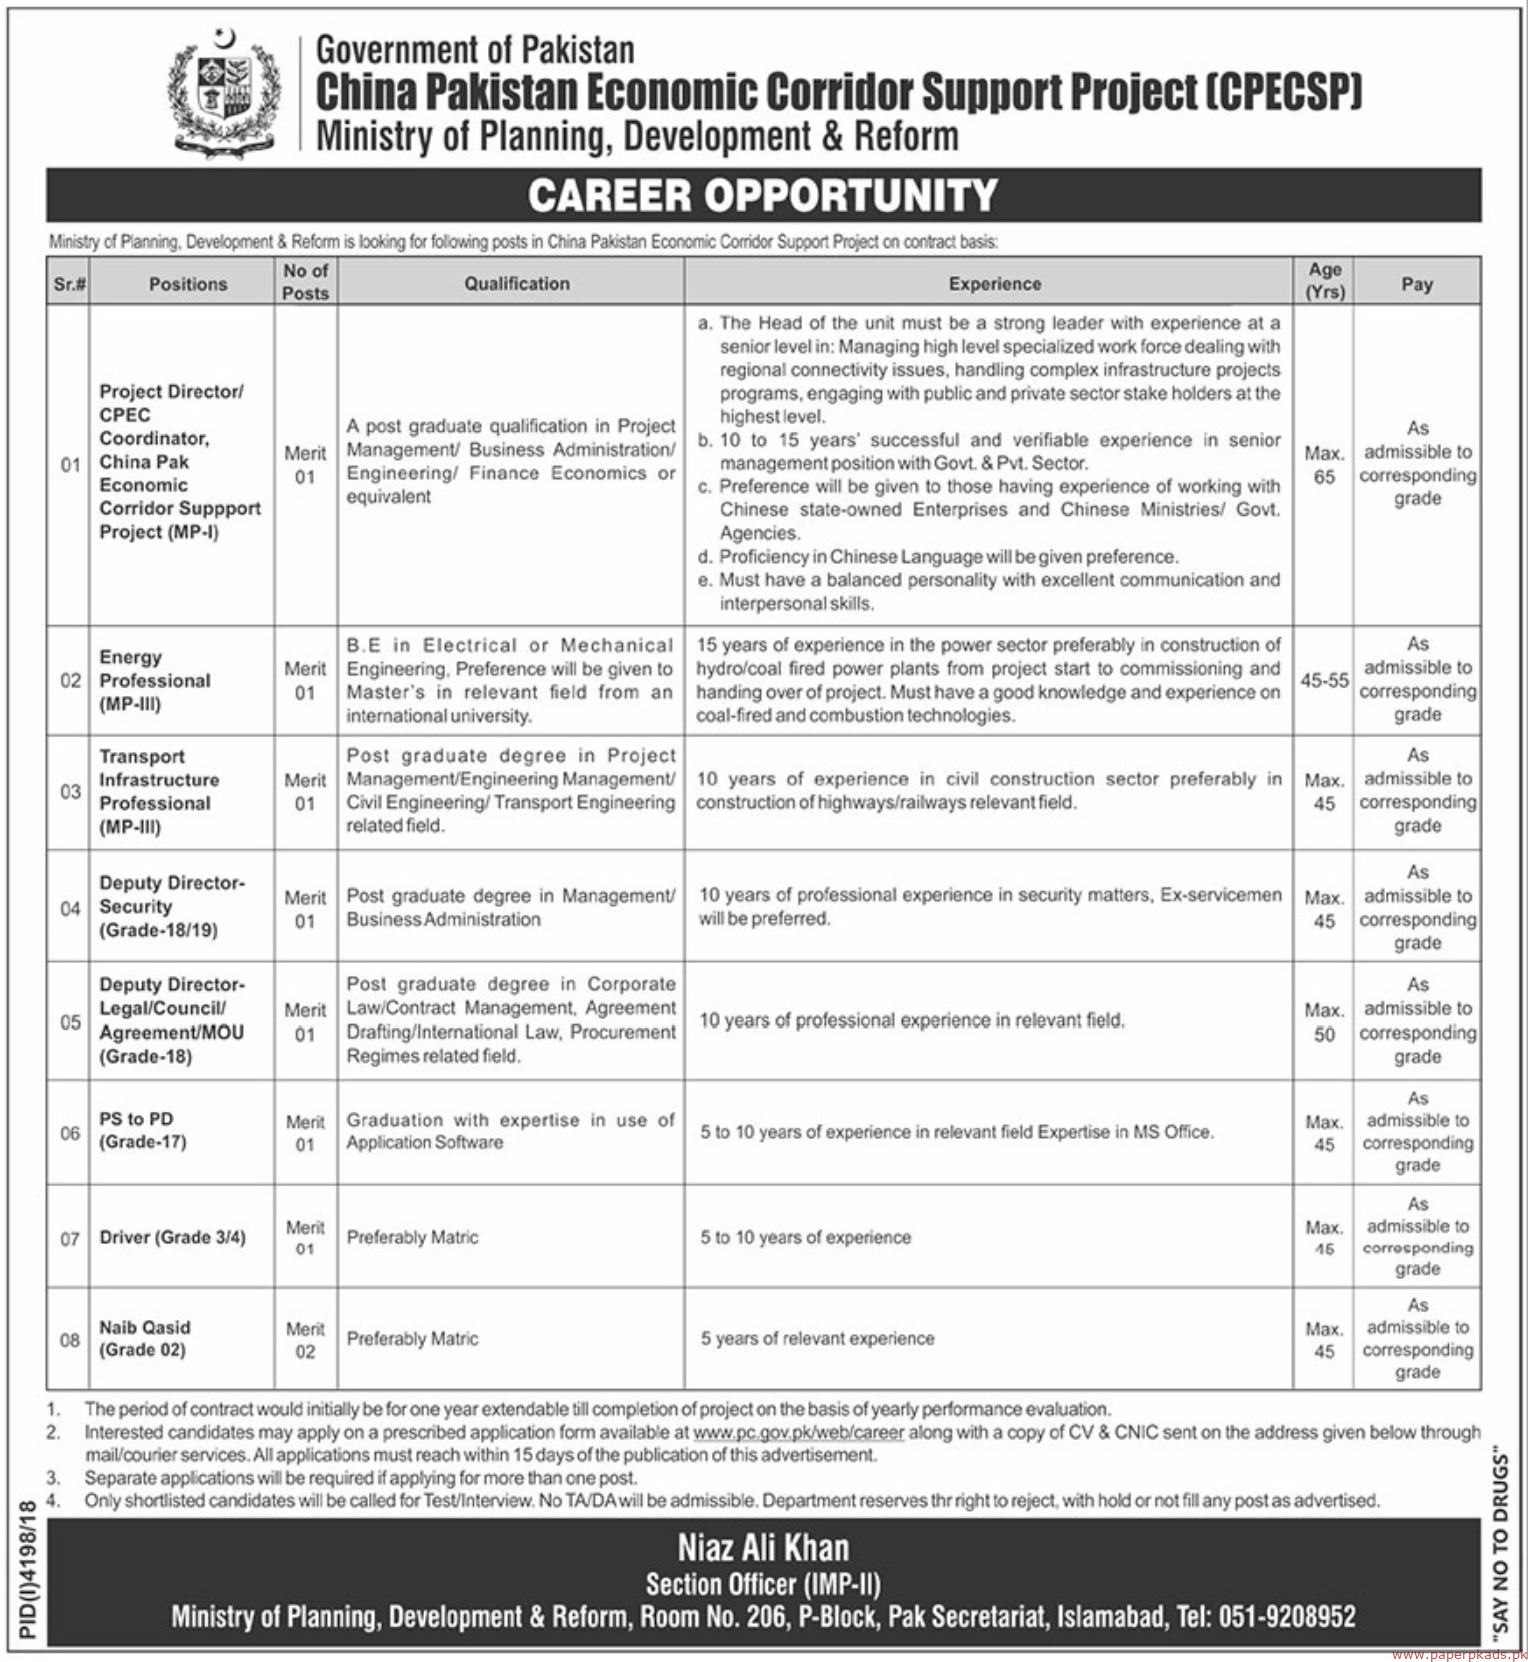 Government of Pakistan - Ministry of Planning Development & Reforms Jobs 2019 Latest